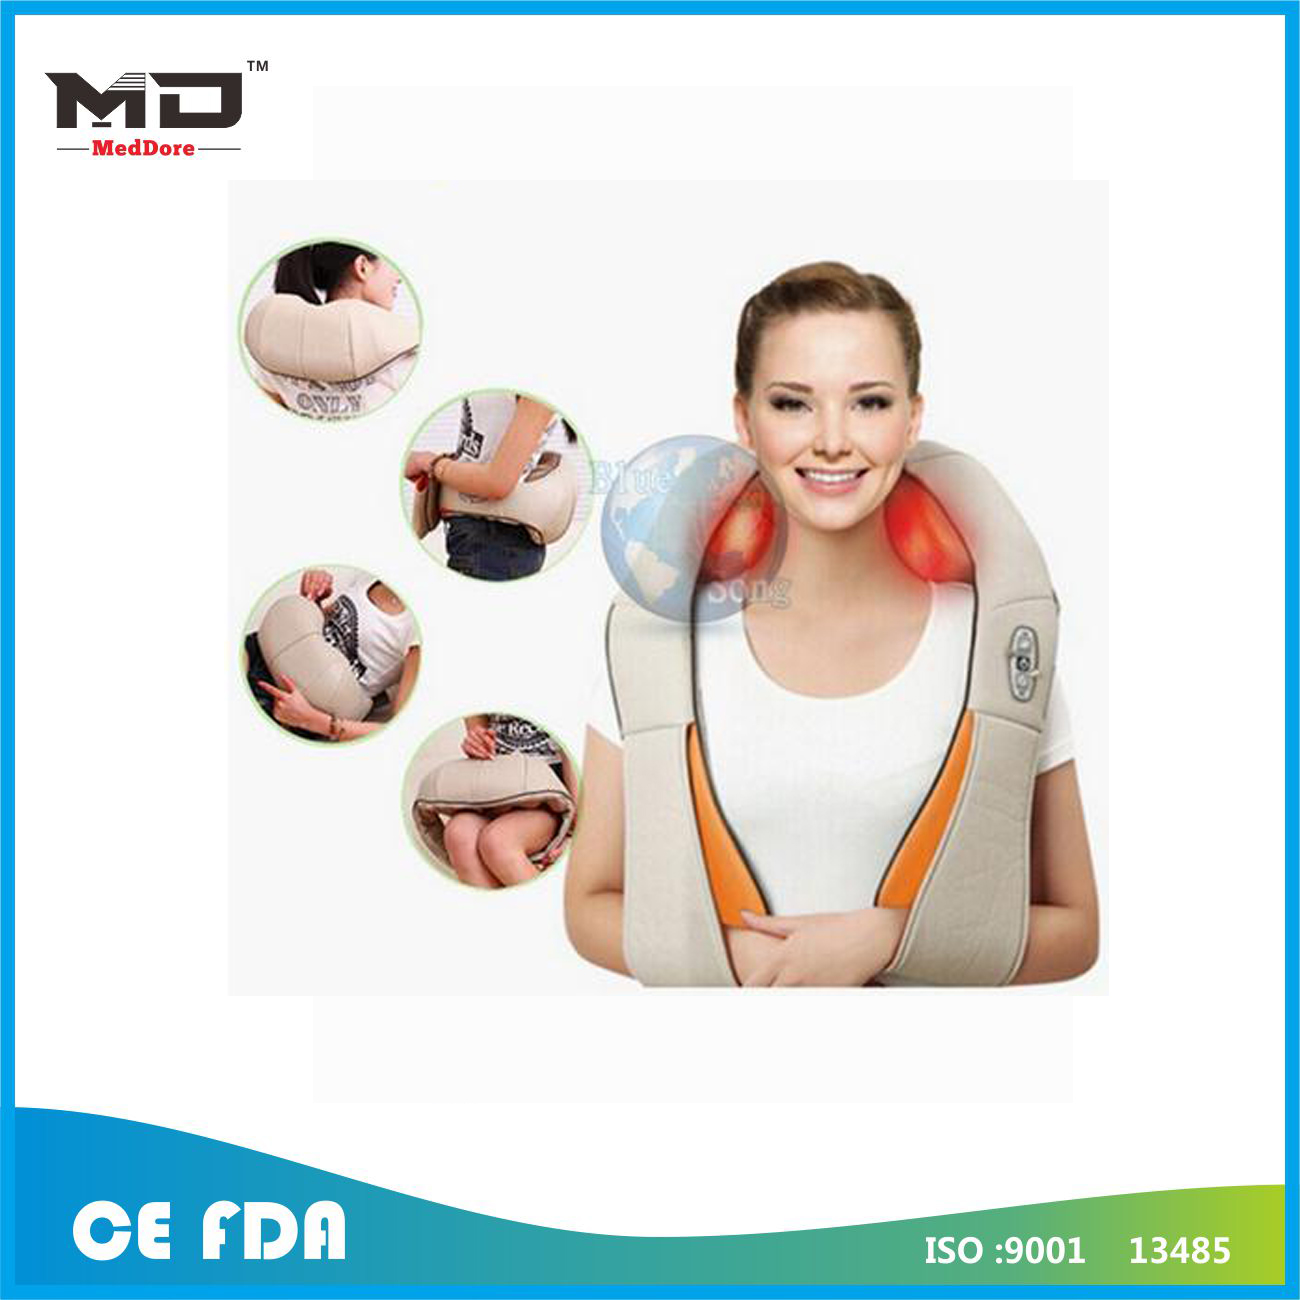 Meddore U Shape Electrical Shiatsu Back Neck Shoulder Massager EU plug and flat plug